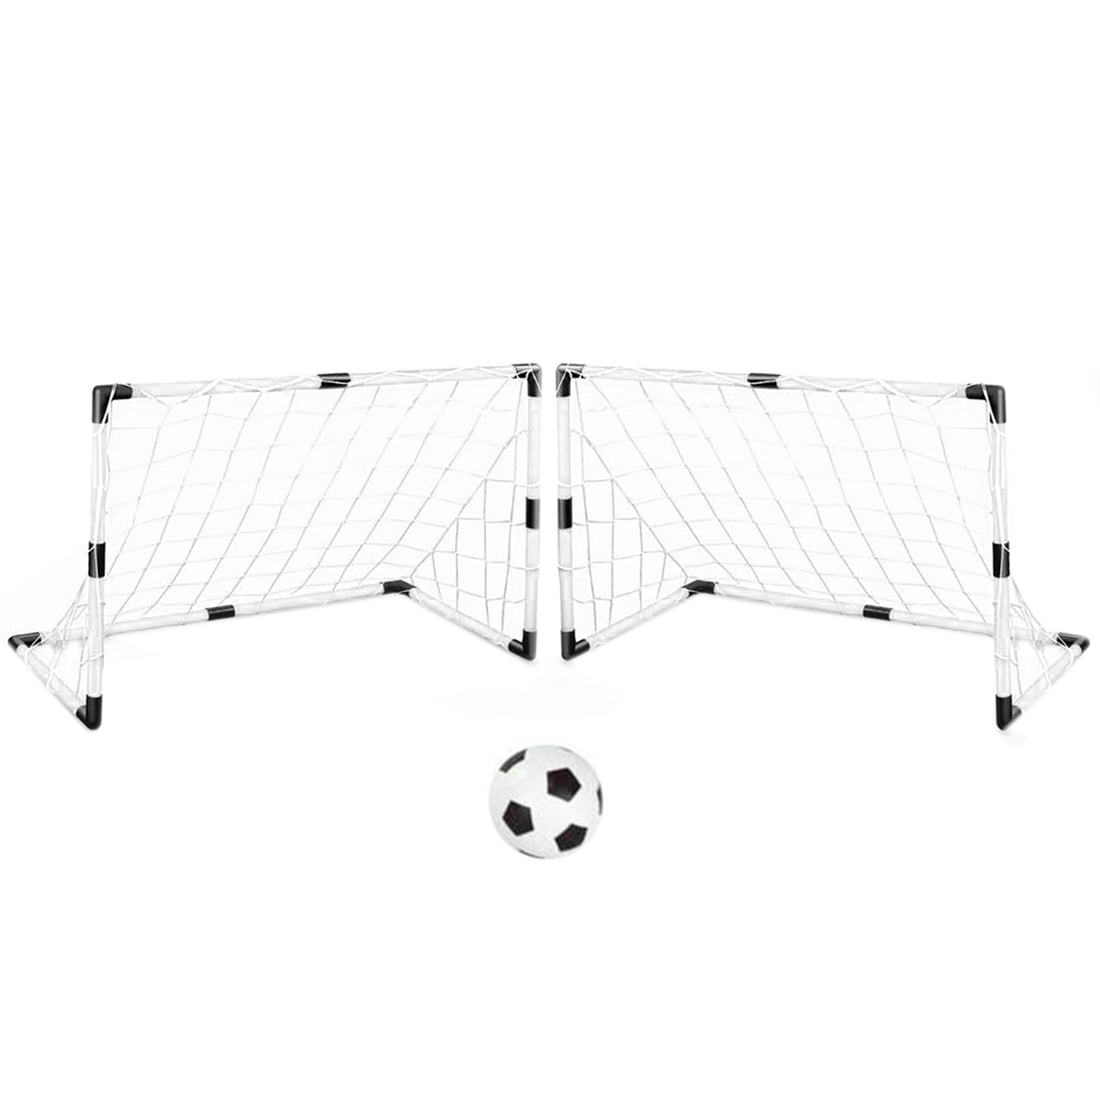 Youth Sports Soccer Goals with Soccer Ball and Pump Practice ScrimMage Game Set of 2 DIY... by